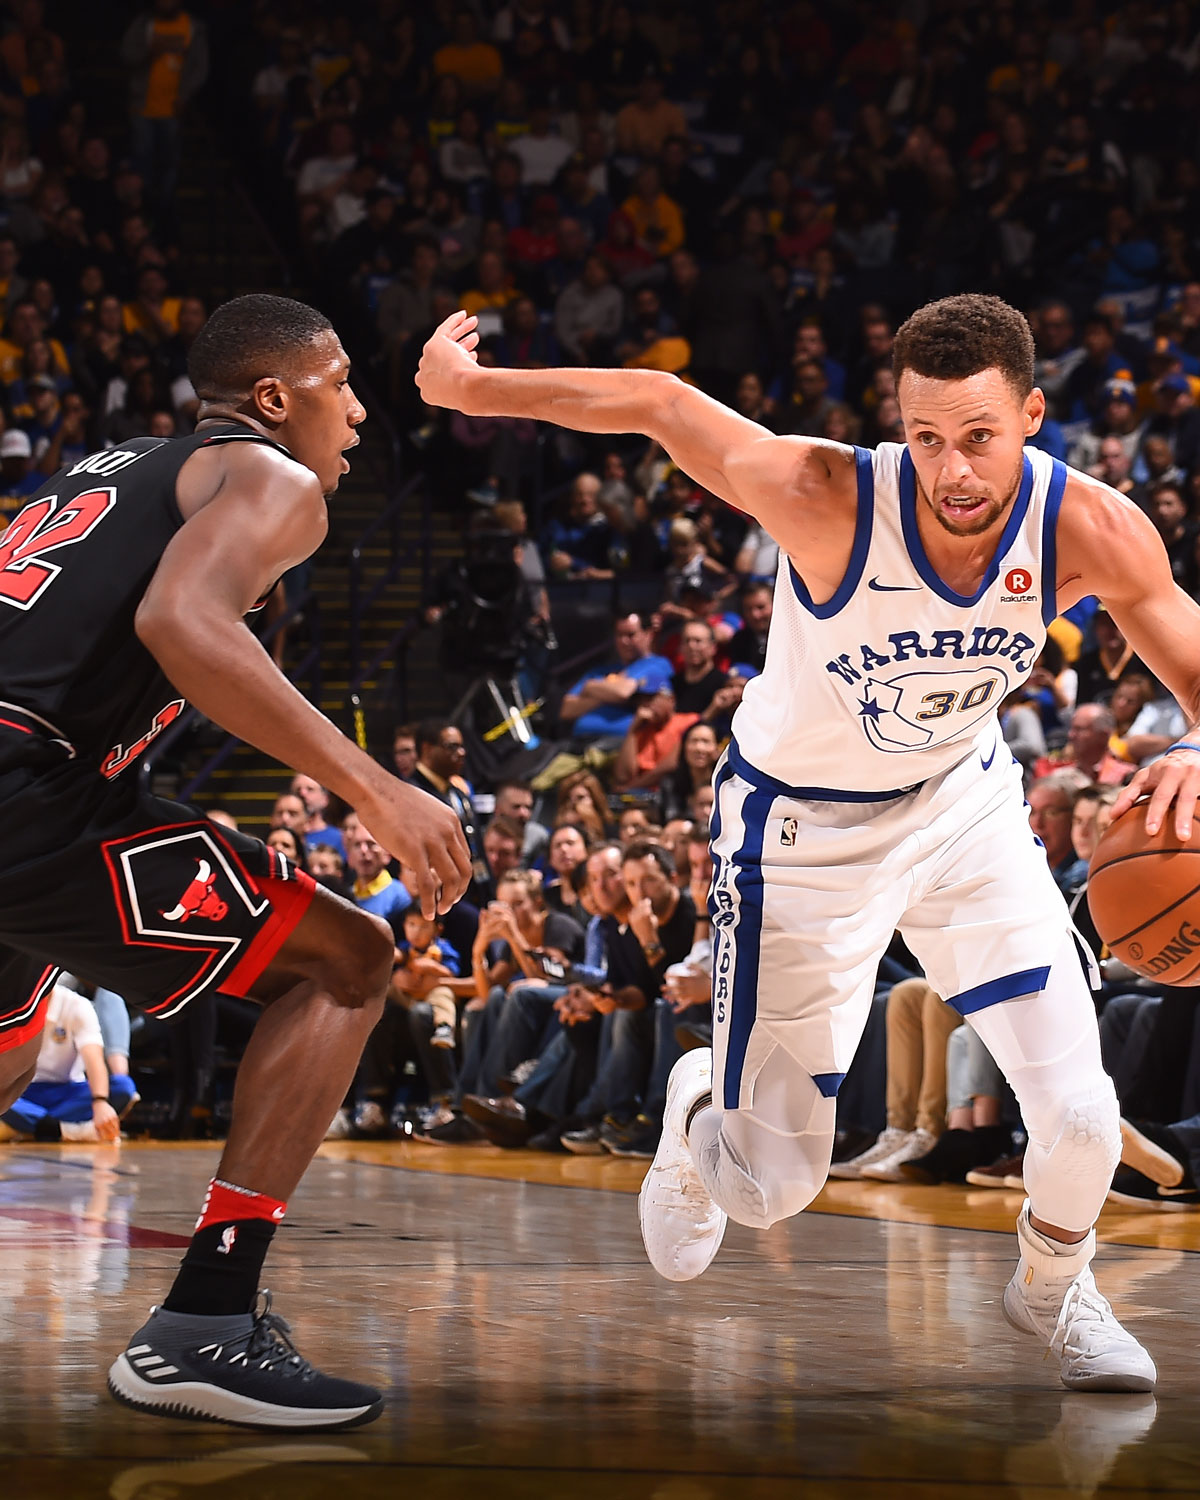 Stephen Curry #30 of the Golden State Warriors handles the ball against the Chicago Bulls on November 24, 2017 at ORACLE Arena in Oakland, California.